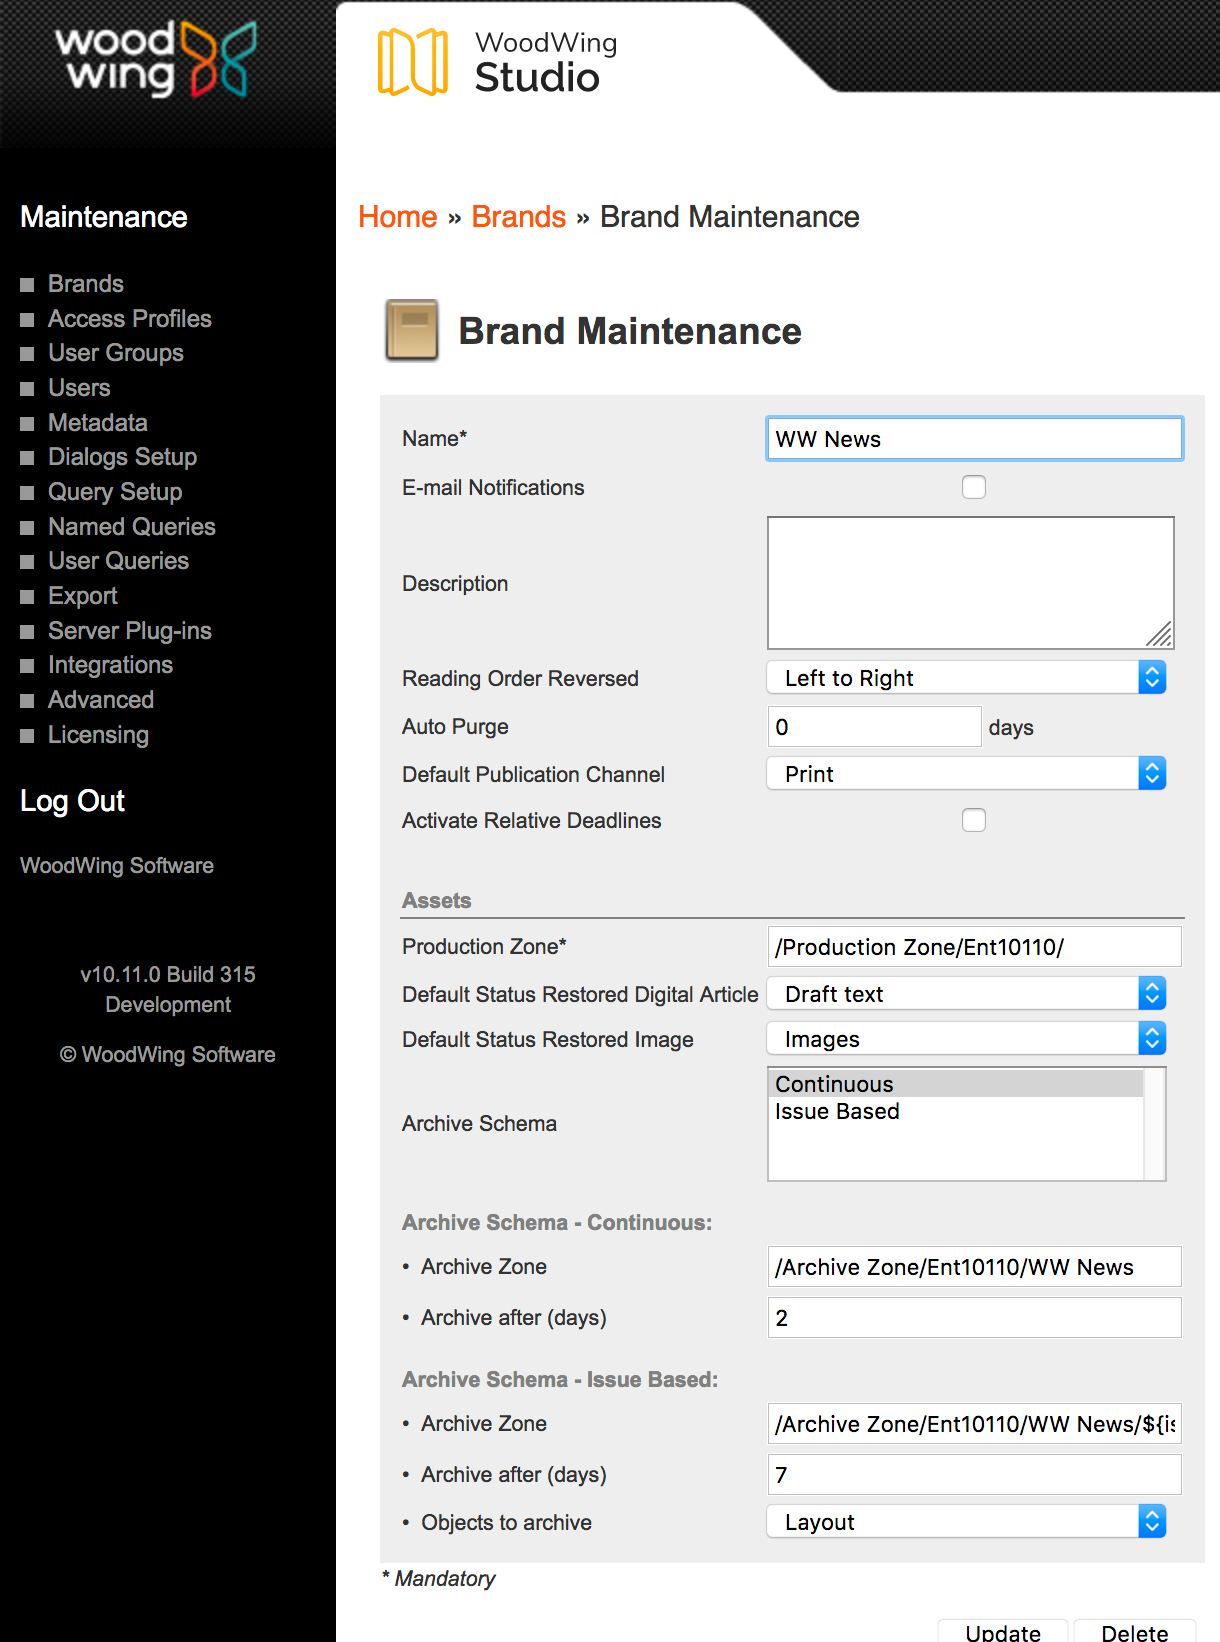 The Archiving settings on the Brand Maintenance page